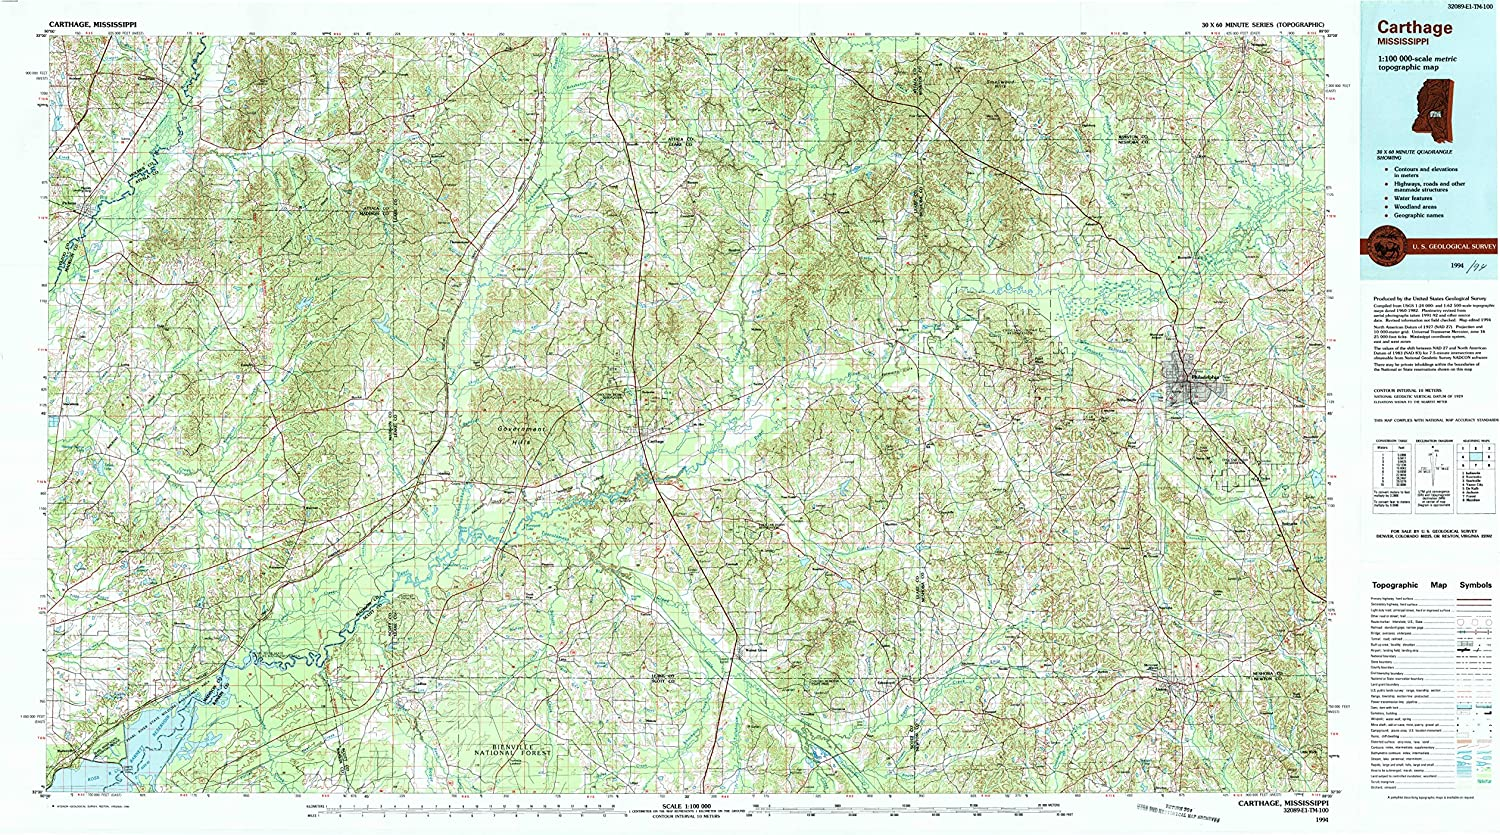 YellowMaps Carthage MS Max 47% OFF Max 41% OFF topo map 1:100000 Minute Scale X 30 60